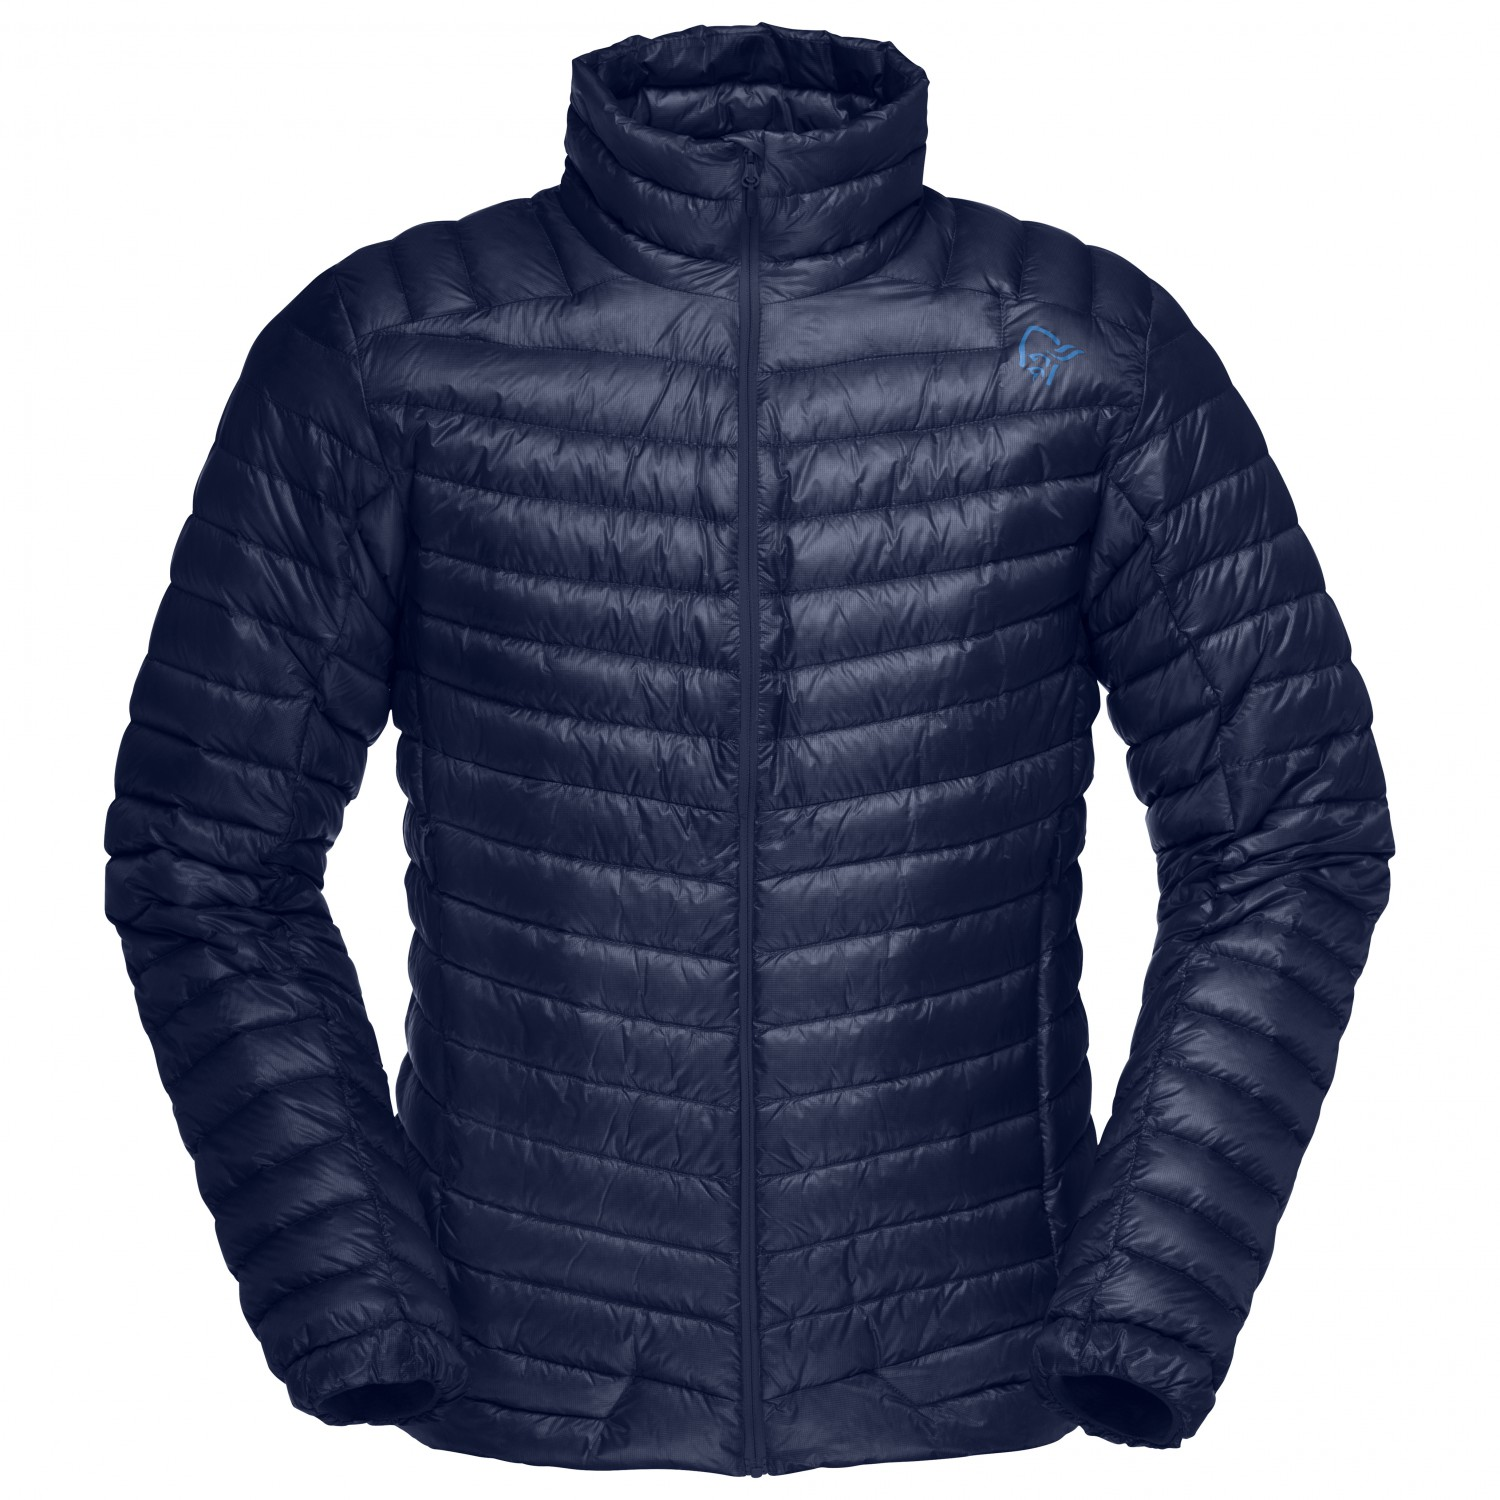 new product 6ec1f a650a Norrøna - Lofoten Super Lightweight Down Jacket - Daunenjacke - Indigo  Night | S